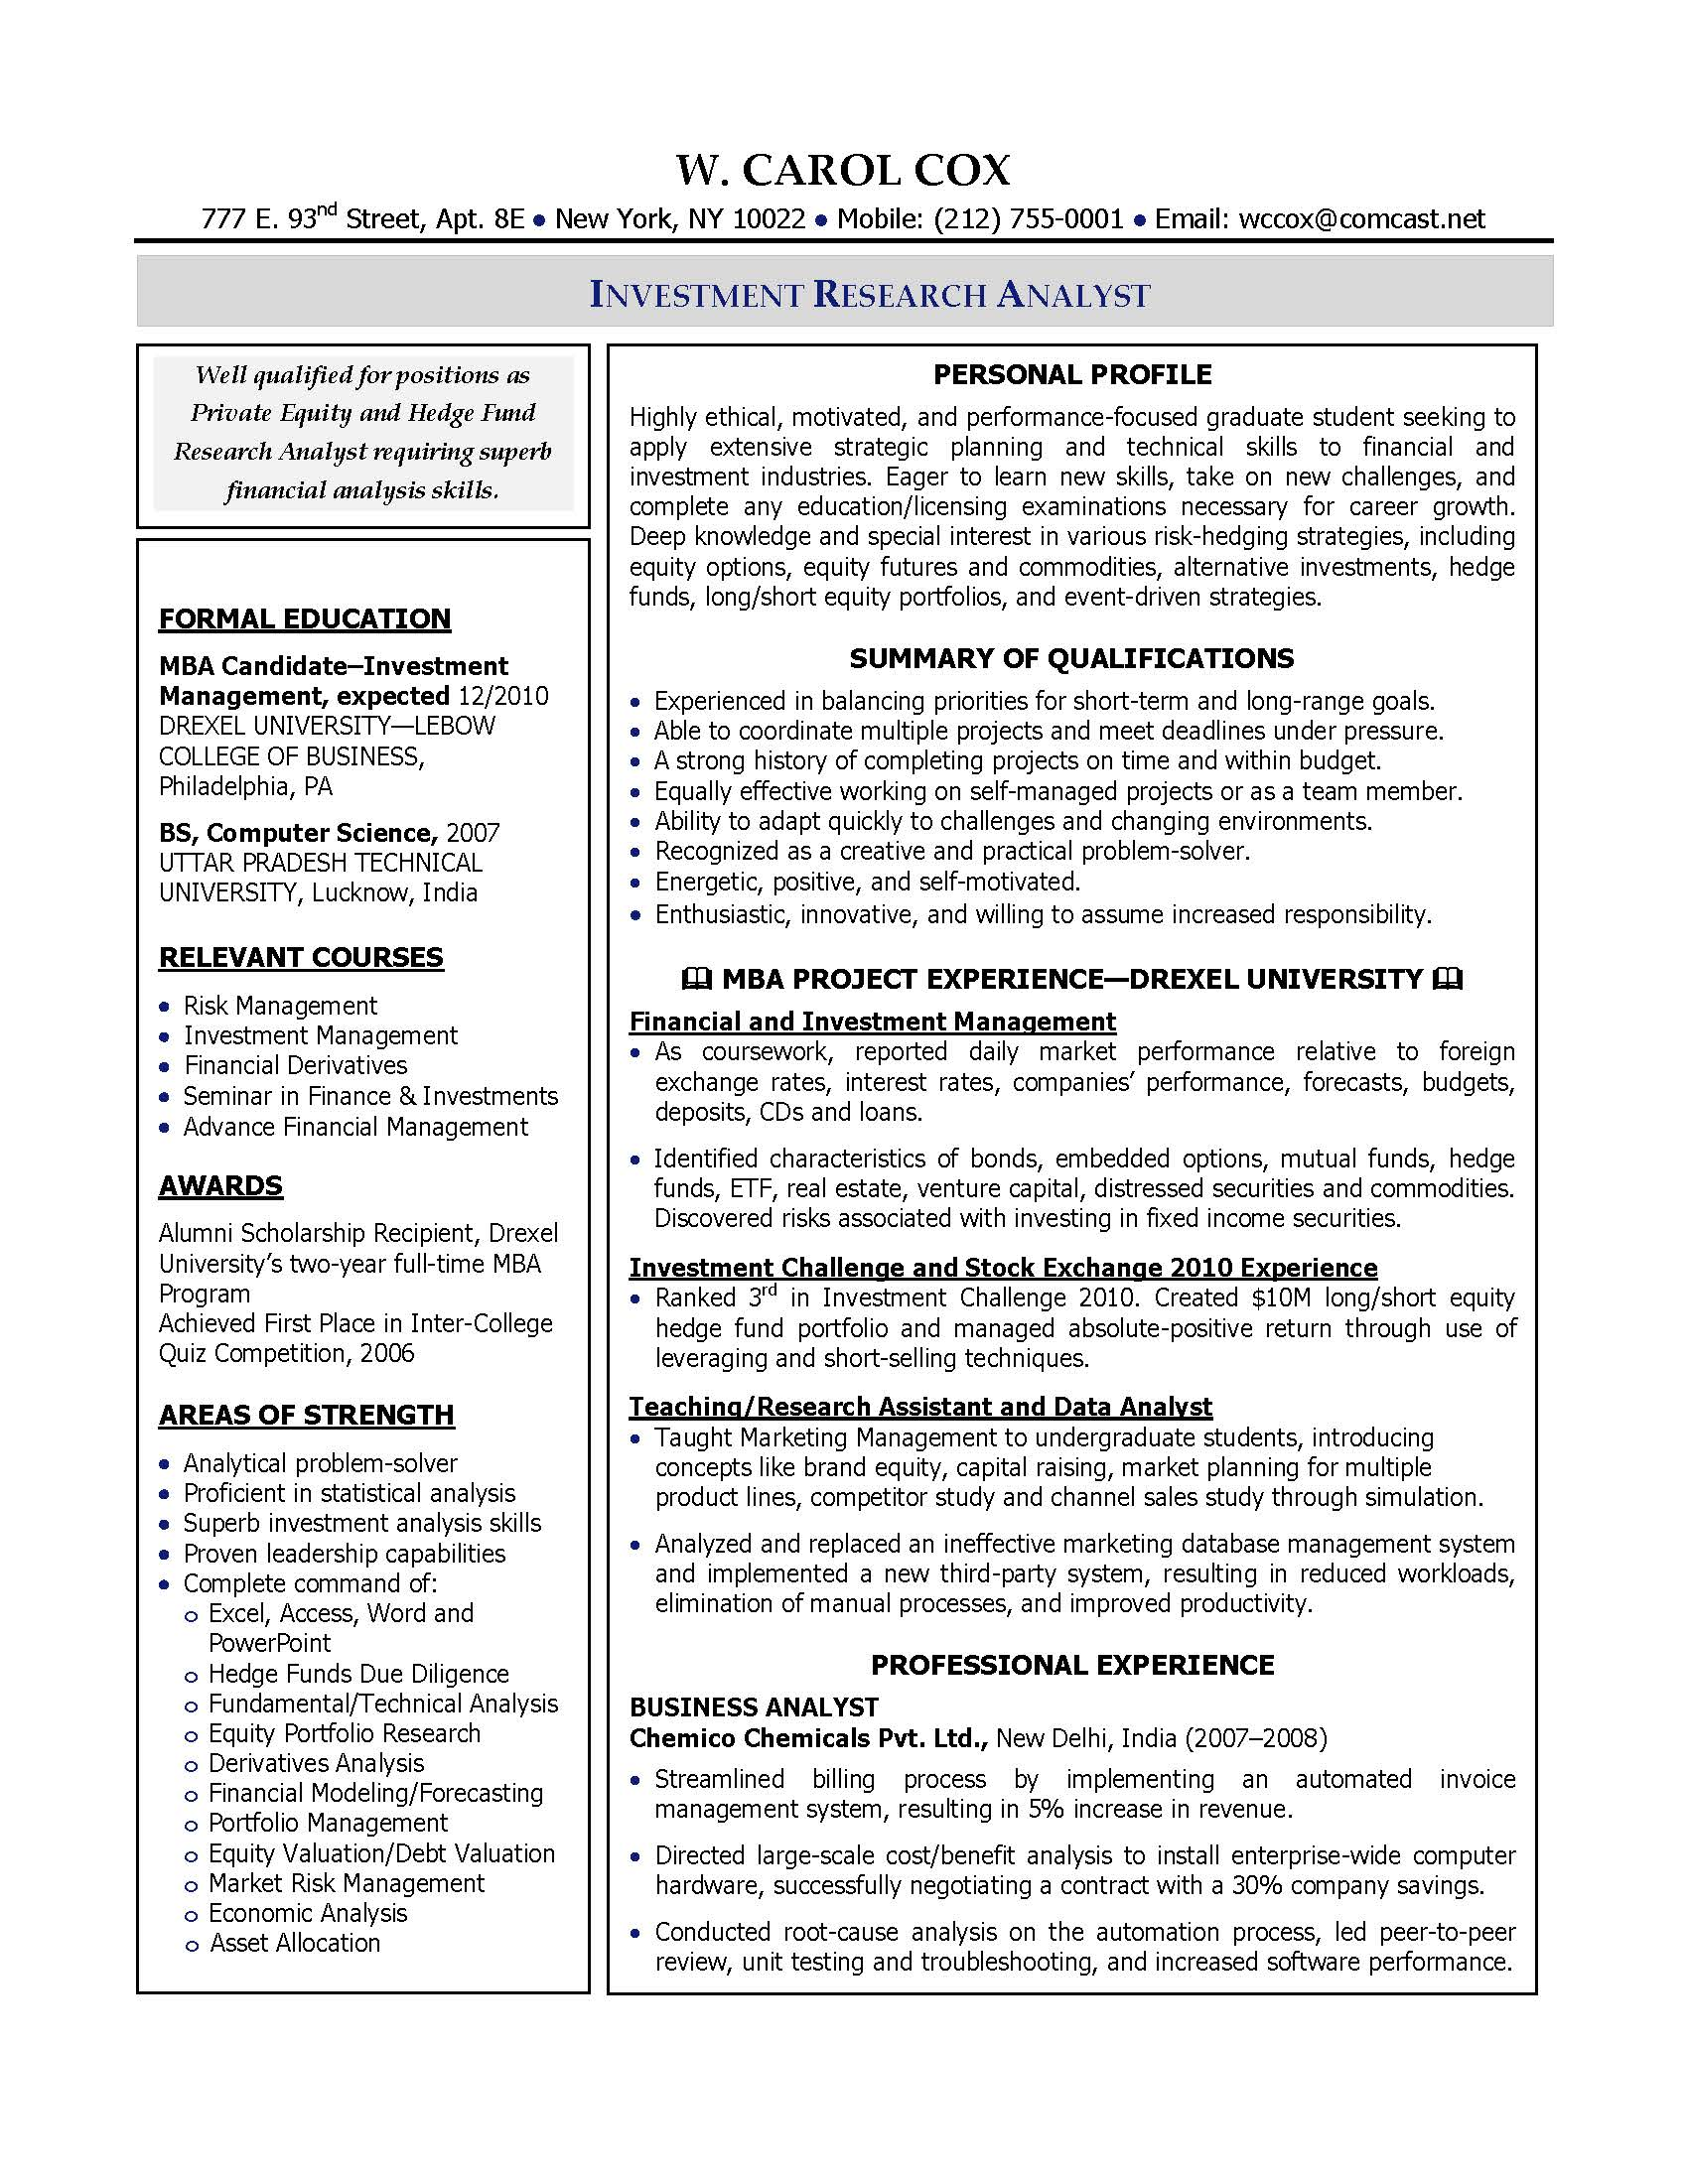 Investment Research Analyst Resume Sample, Provided By Elite Resume Writing  Services  Examples Of Winning Resumes